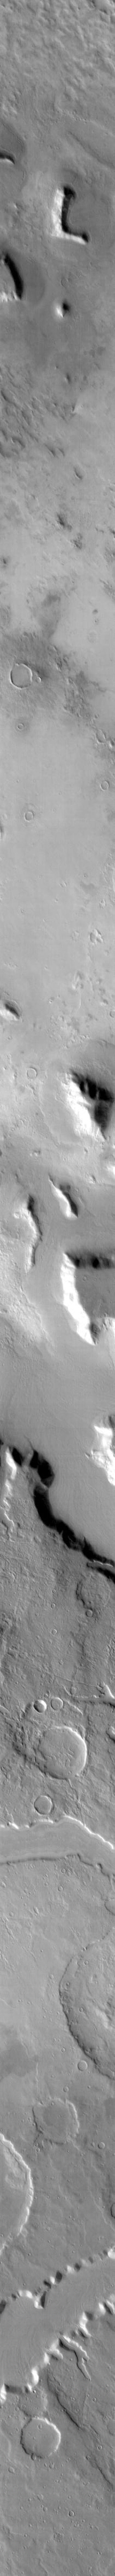 This image from NASA's 2001 Mars Odyssey spacecraft is THEMIS ART IMAGE #70 In our continuing quest to find the martian alphabet - we have the 'L'.